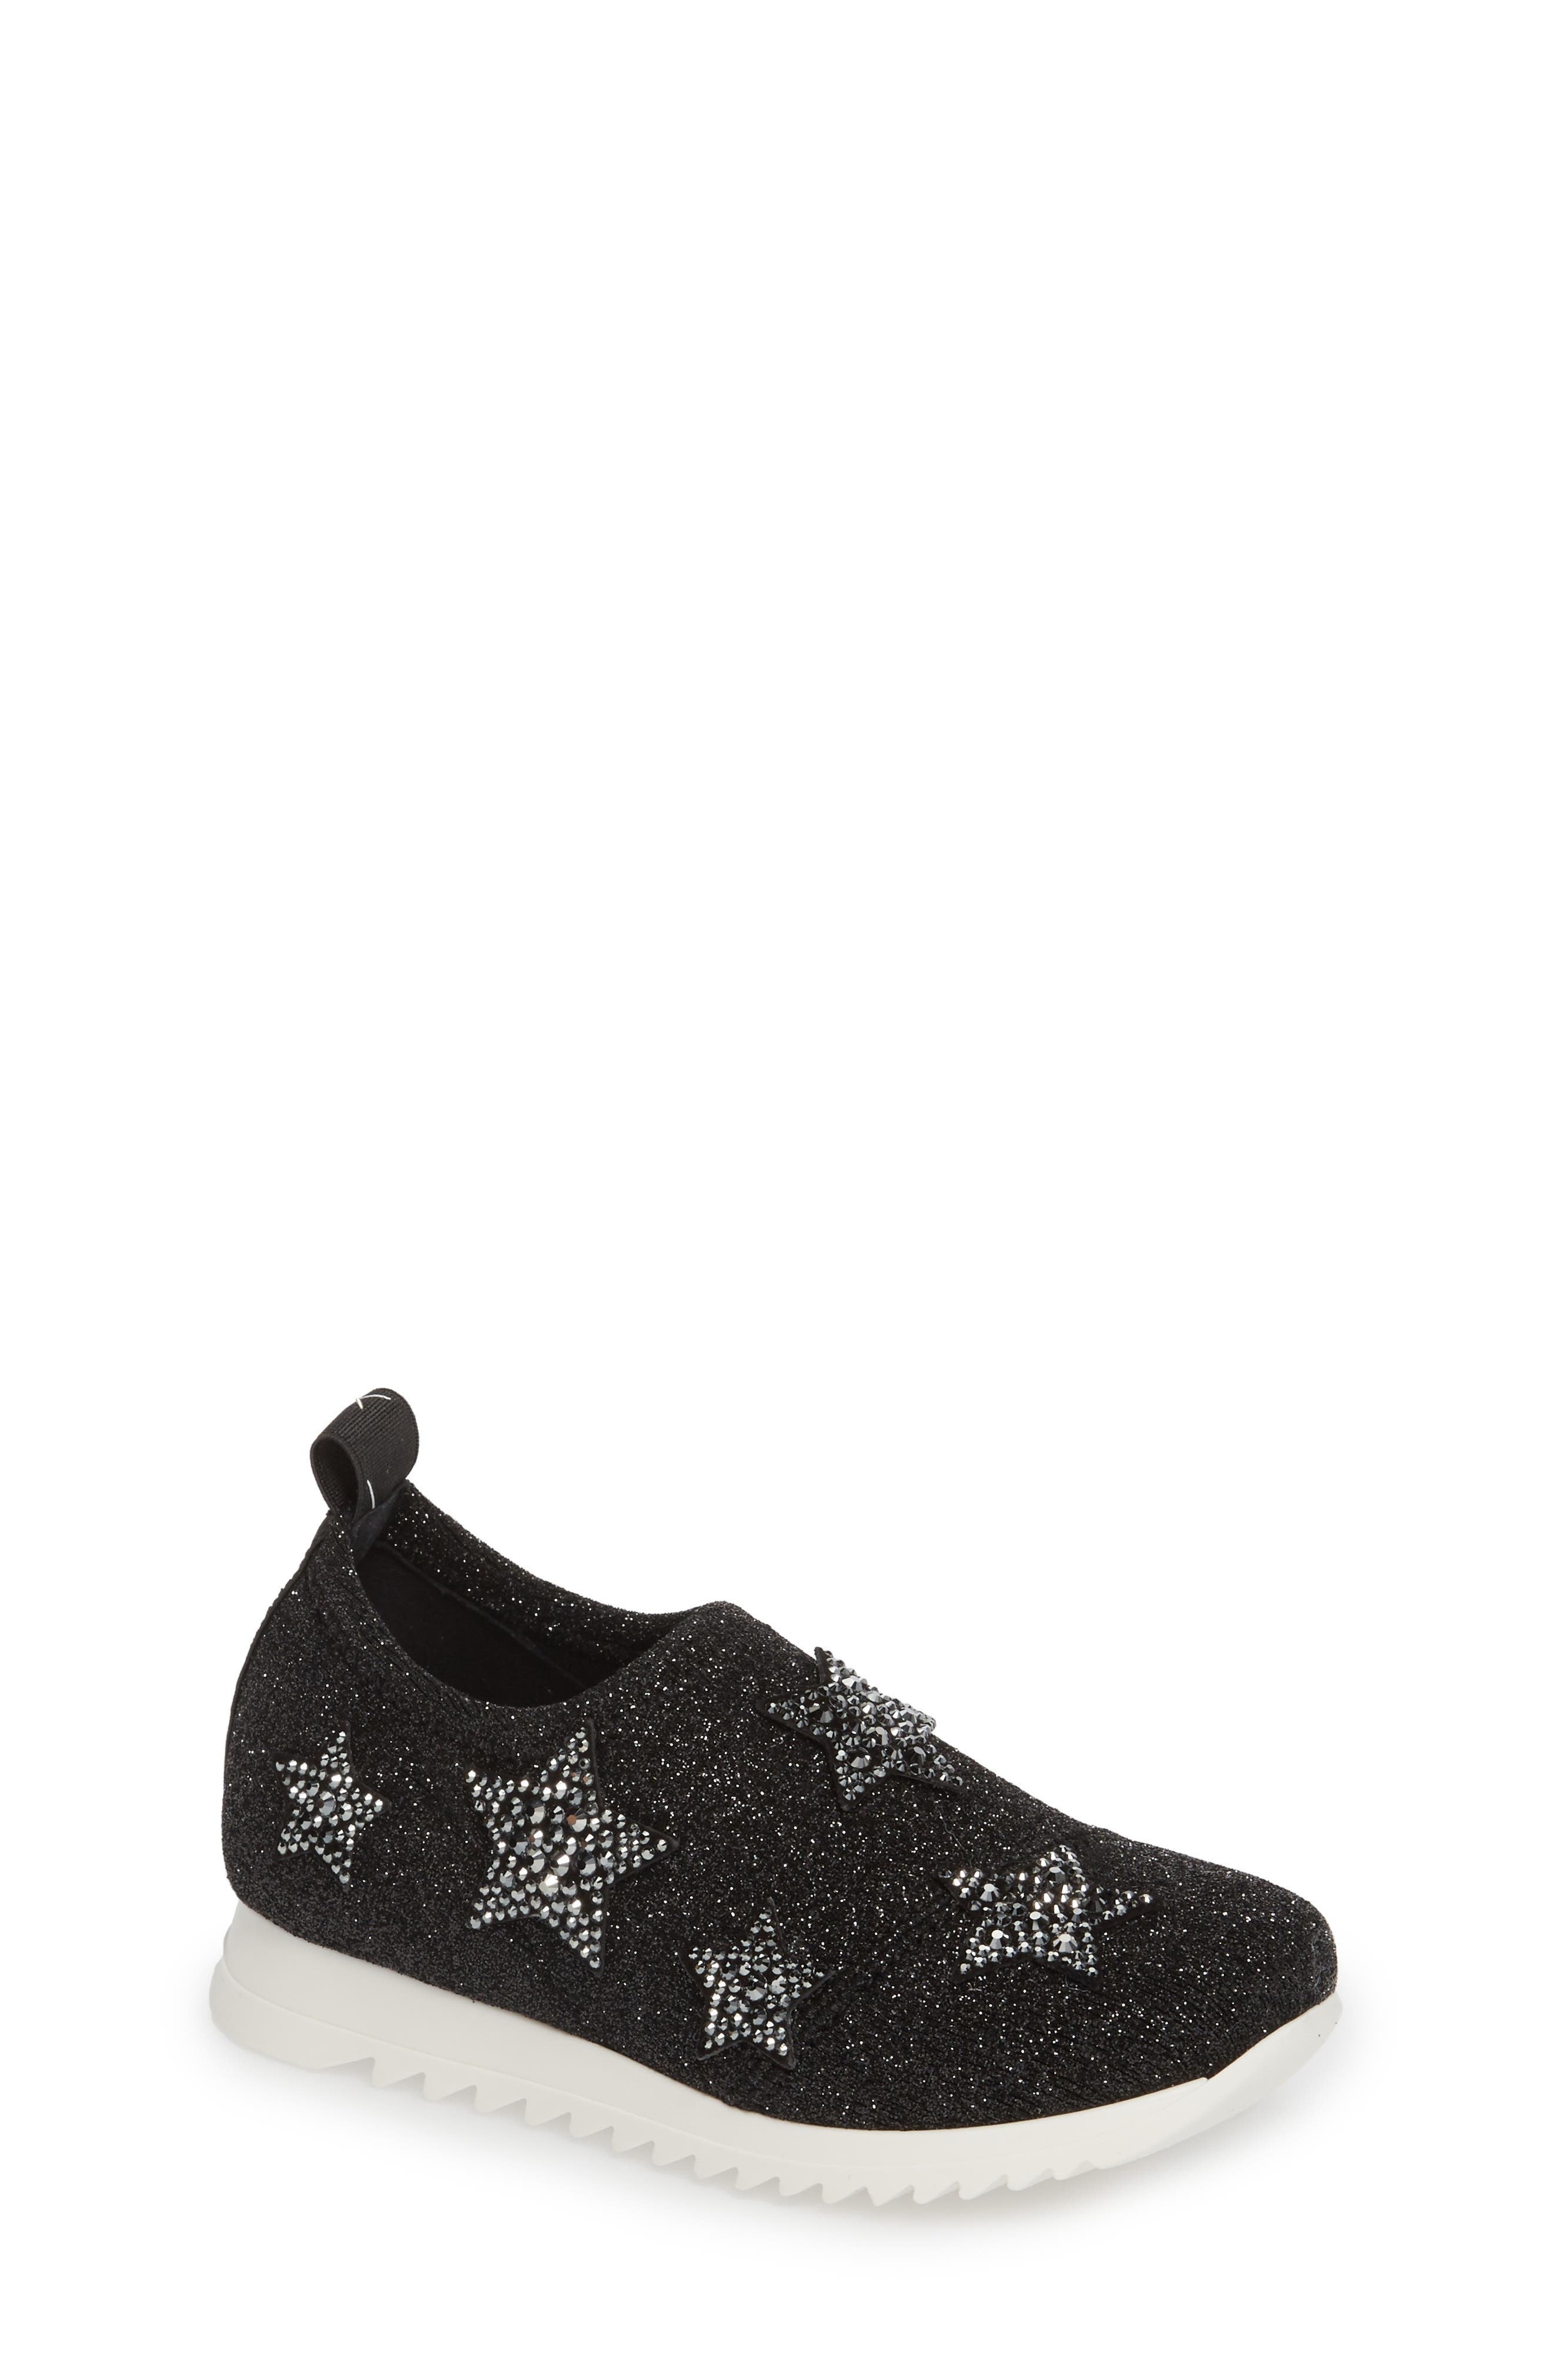 Giuseppe Zanotti Natalie Star Glitter Slip-On Sneaker (Baby, Walker, Toddler & Little Kid)